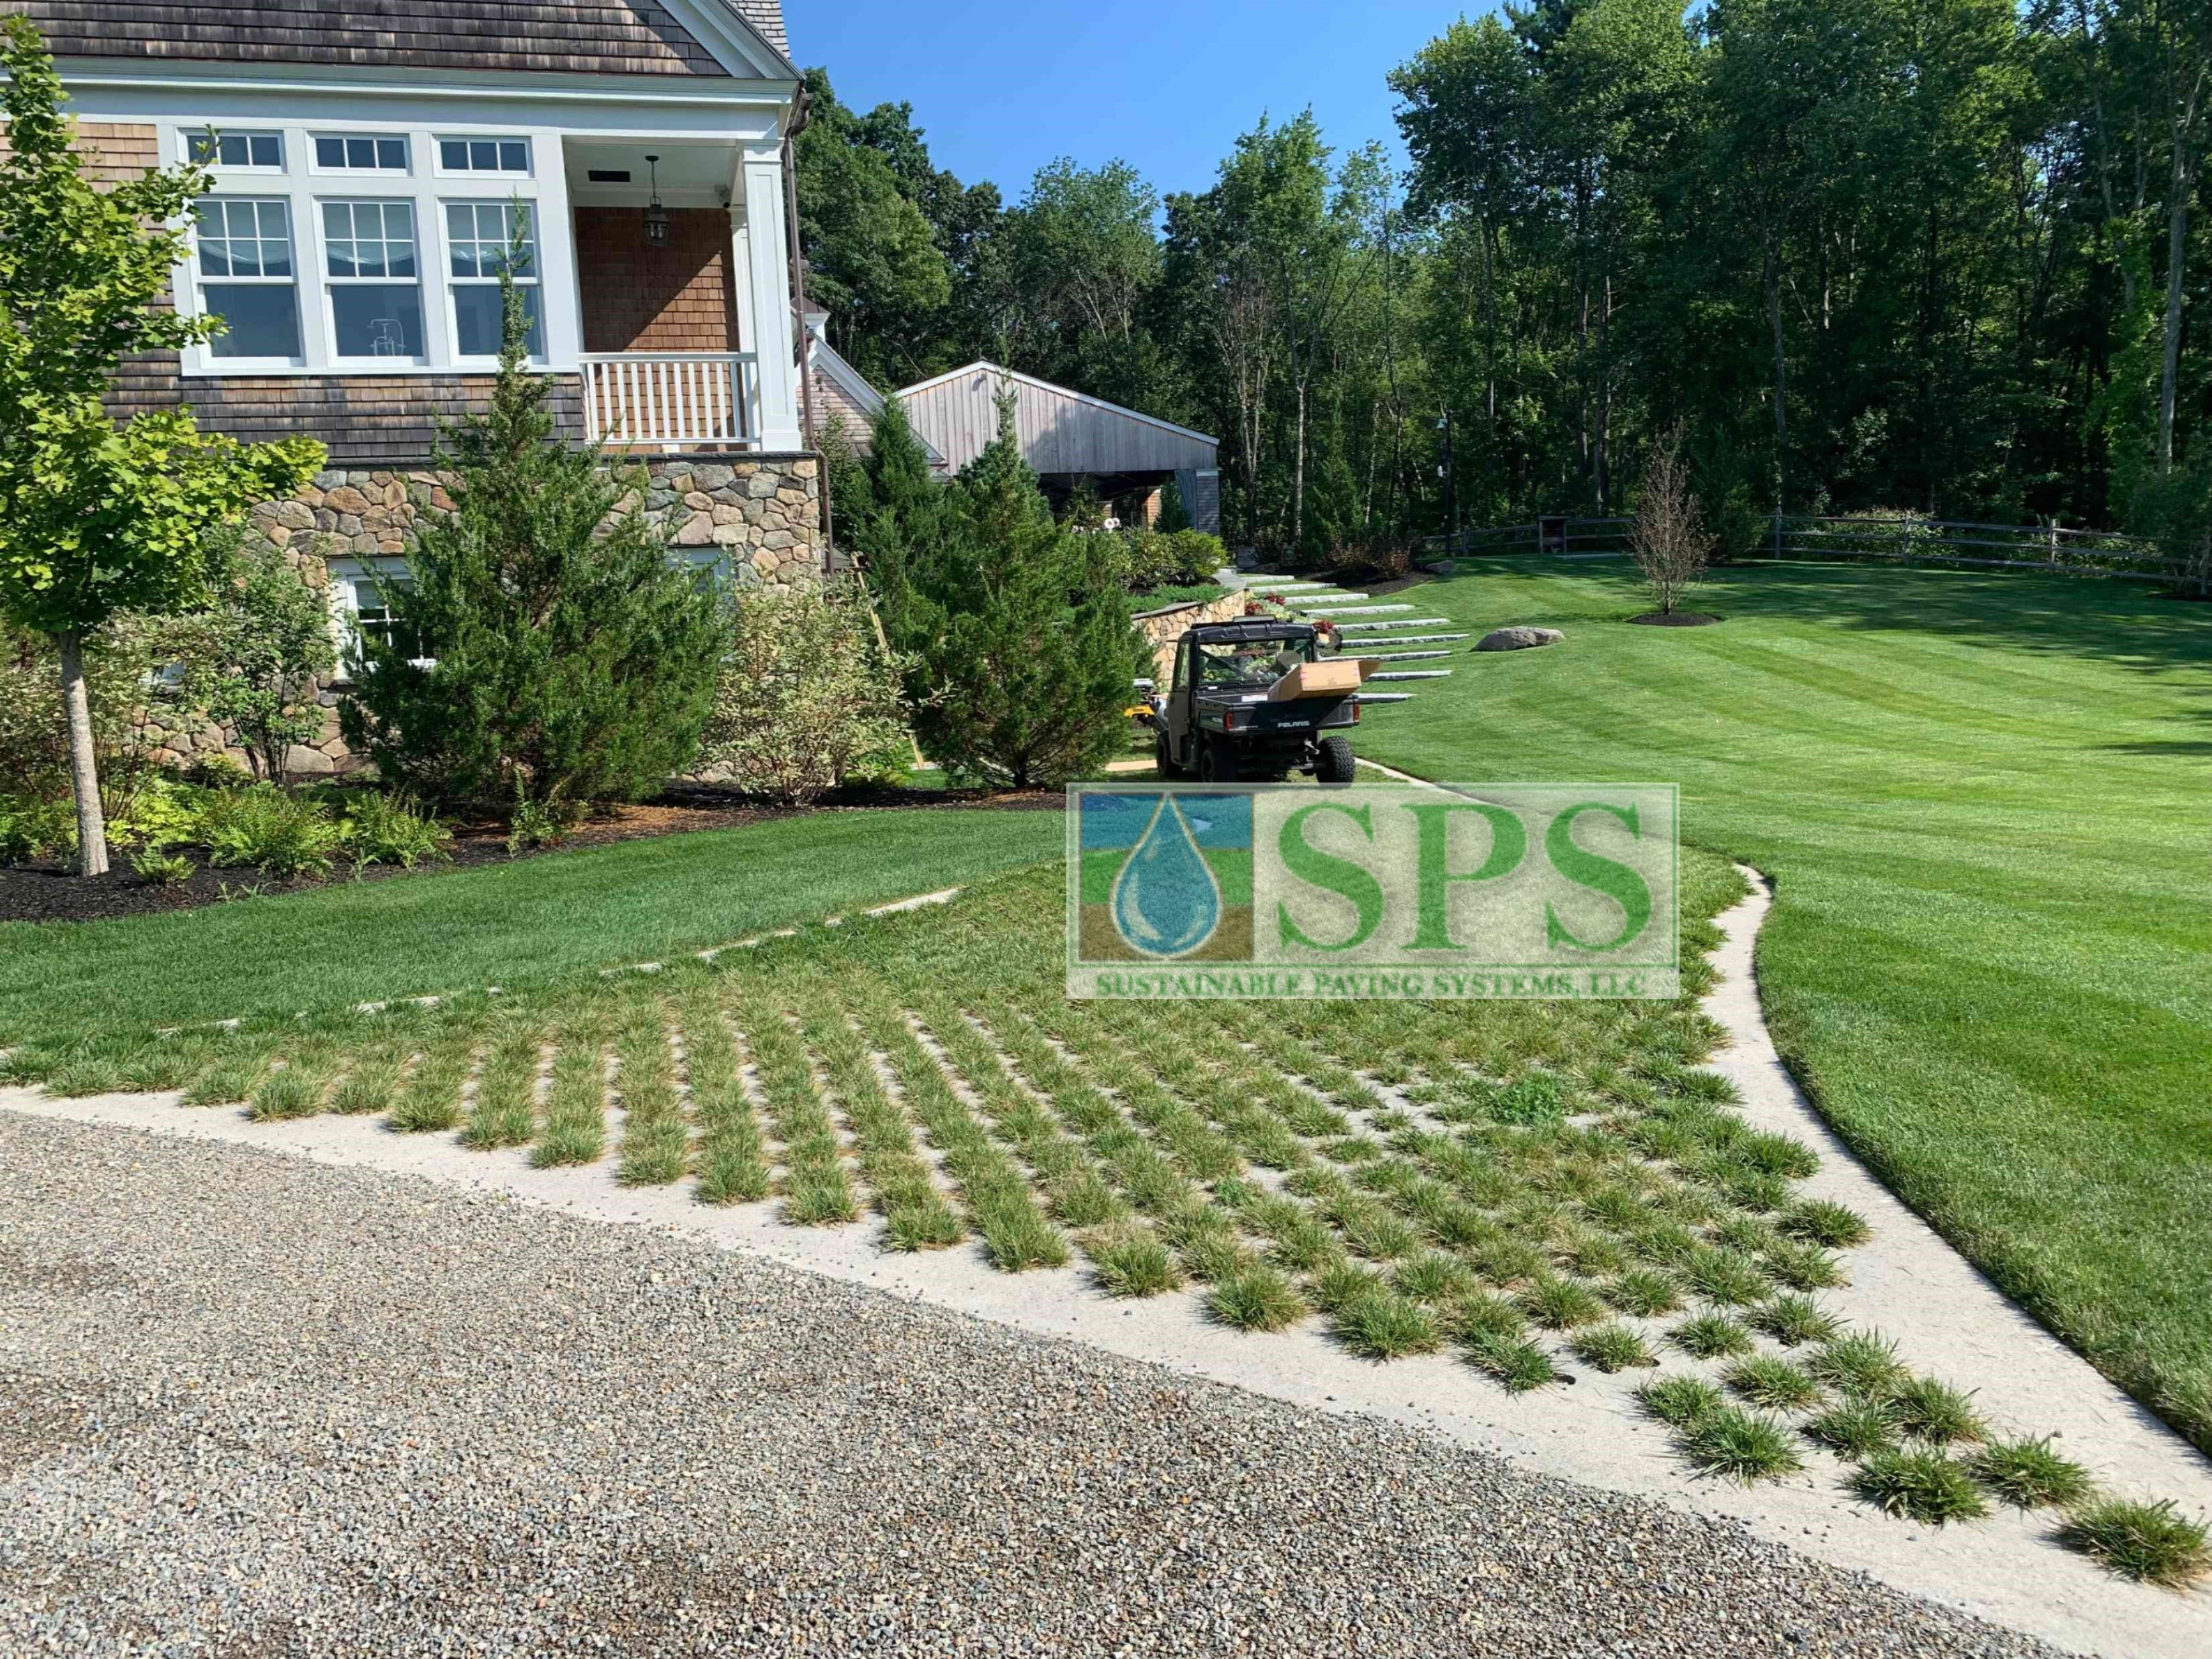 A view of the Partially Concealed Grasscrete Pervious Concrete installation with a delivery vehicle near the house of the Grand Estate in Essex County, MA.